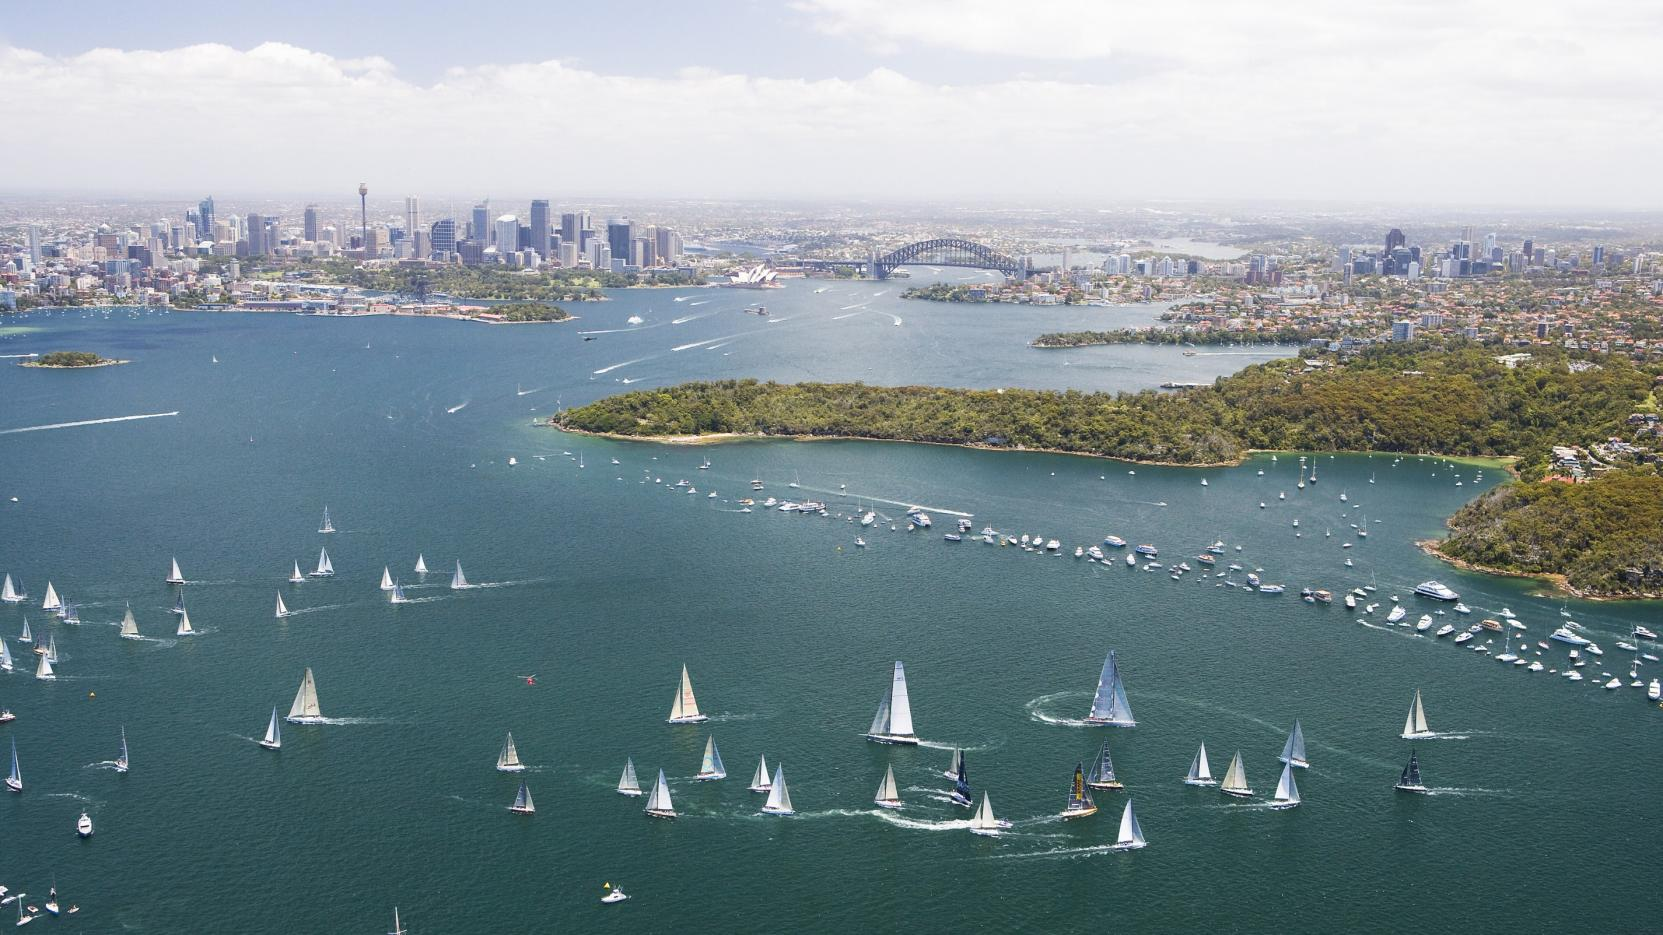 Sydney to Hobart Yacht Race, Sydney Harbour, NSW © Hamilton Lund, Destination New South Wales